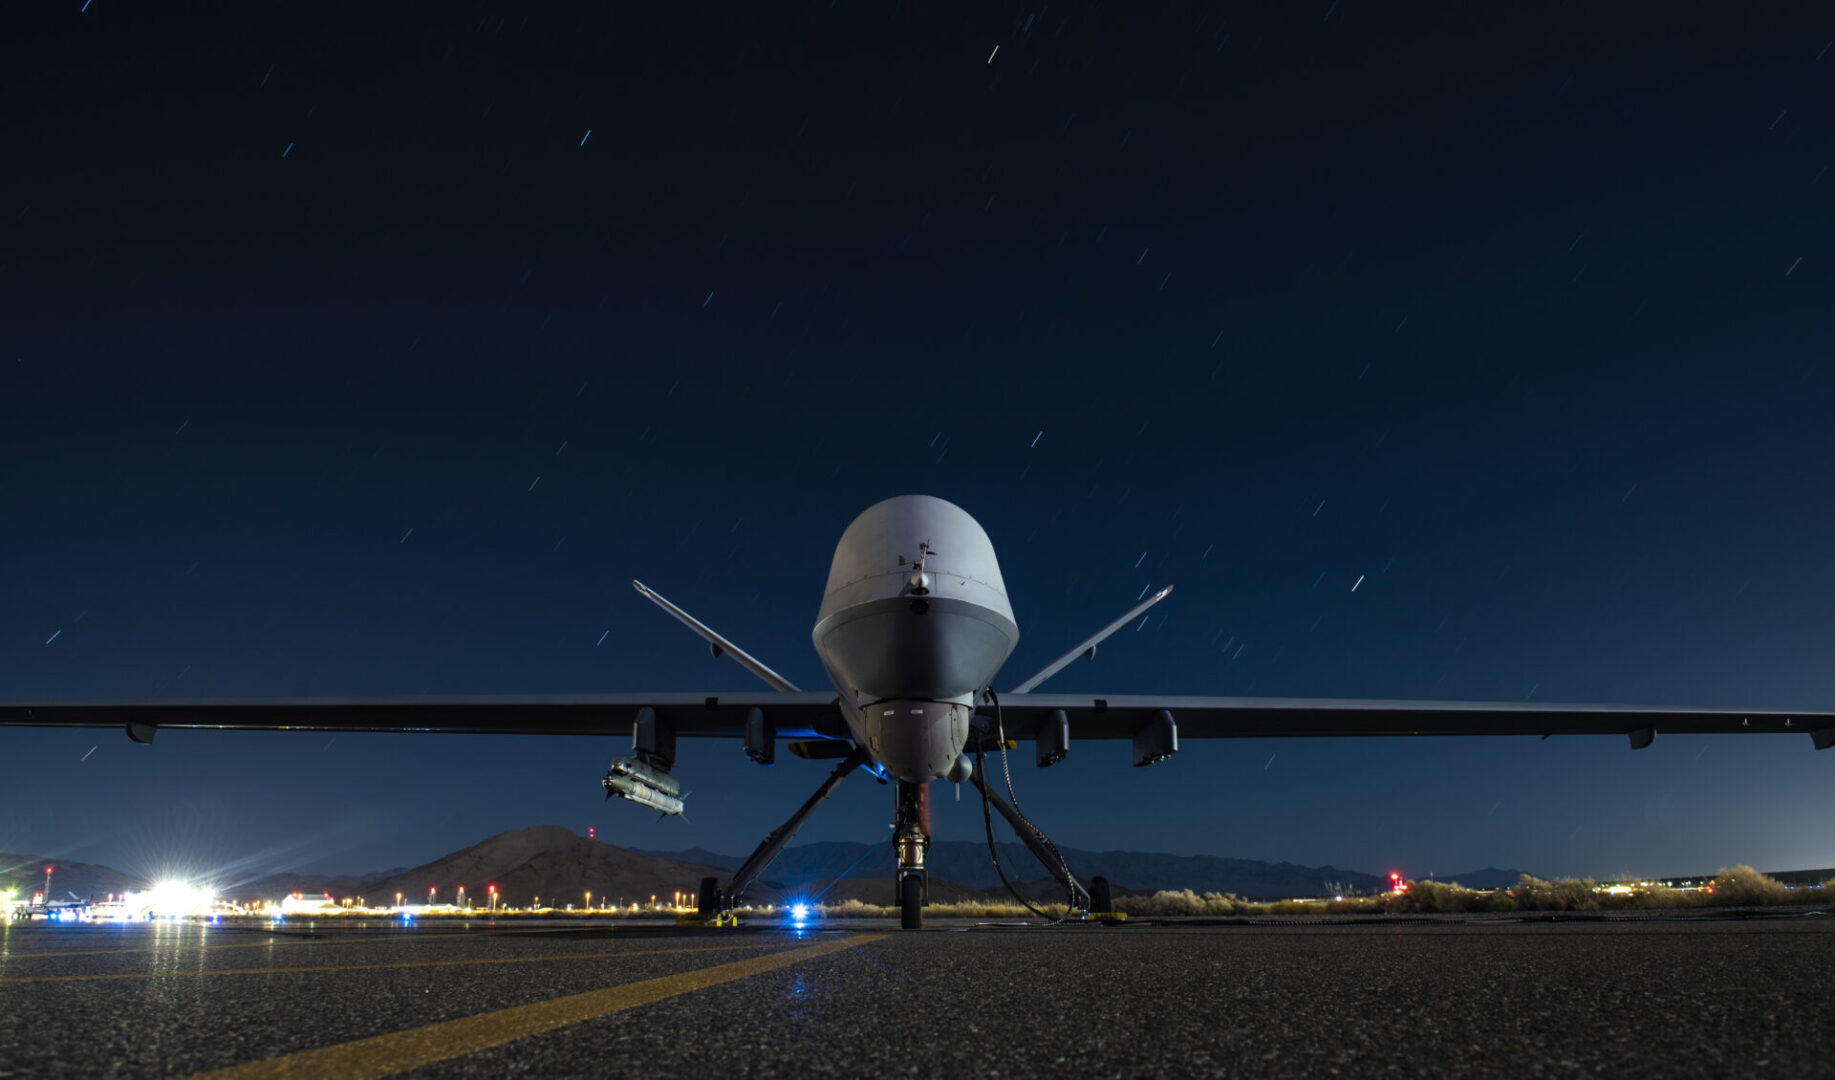 A U.S. Air Force MQ-9 Reaper assigned to the 556th Test and Evaluation Squadron armed with an AIM-9X Block 2 missile sits on the ramp at Creech Air Force Base, Nevada, Sept. 3, 2020. During the weapon test, aircrew successfully employed a live air-to-air AIM-9X Block 2 missile against a target BQM-167 drone simulating a cruise missile. (U.S. Air Force photo by Senior Airman Haley Stevens)